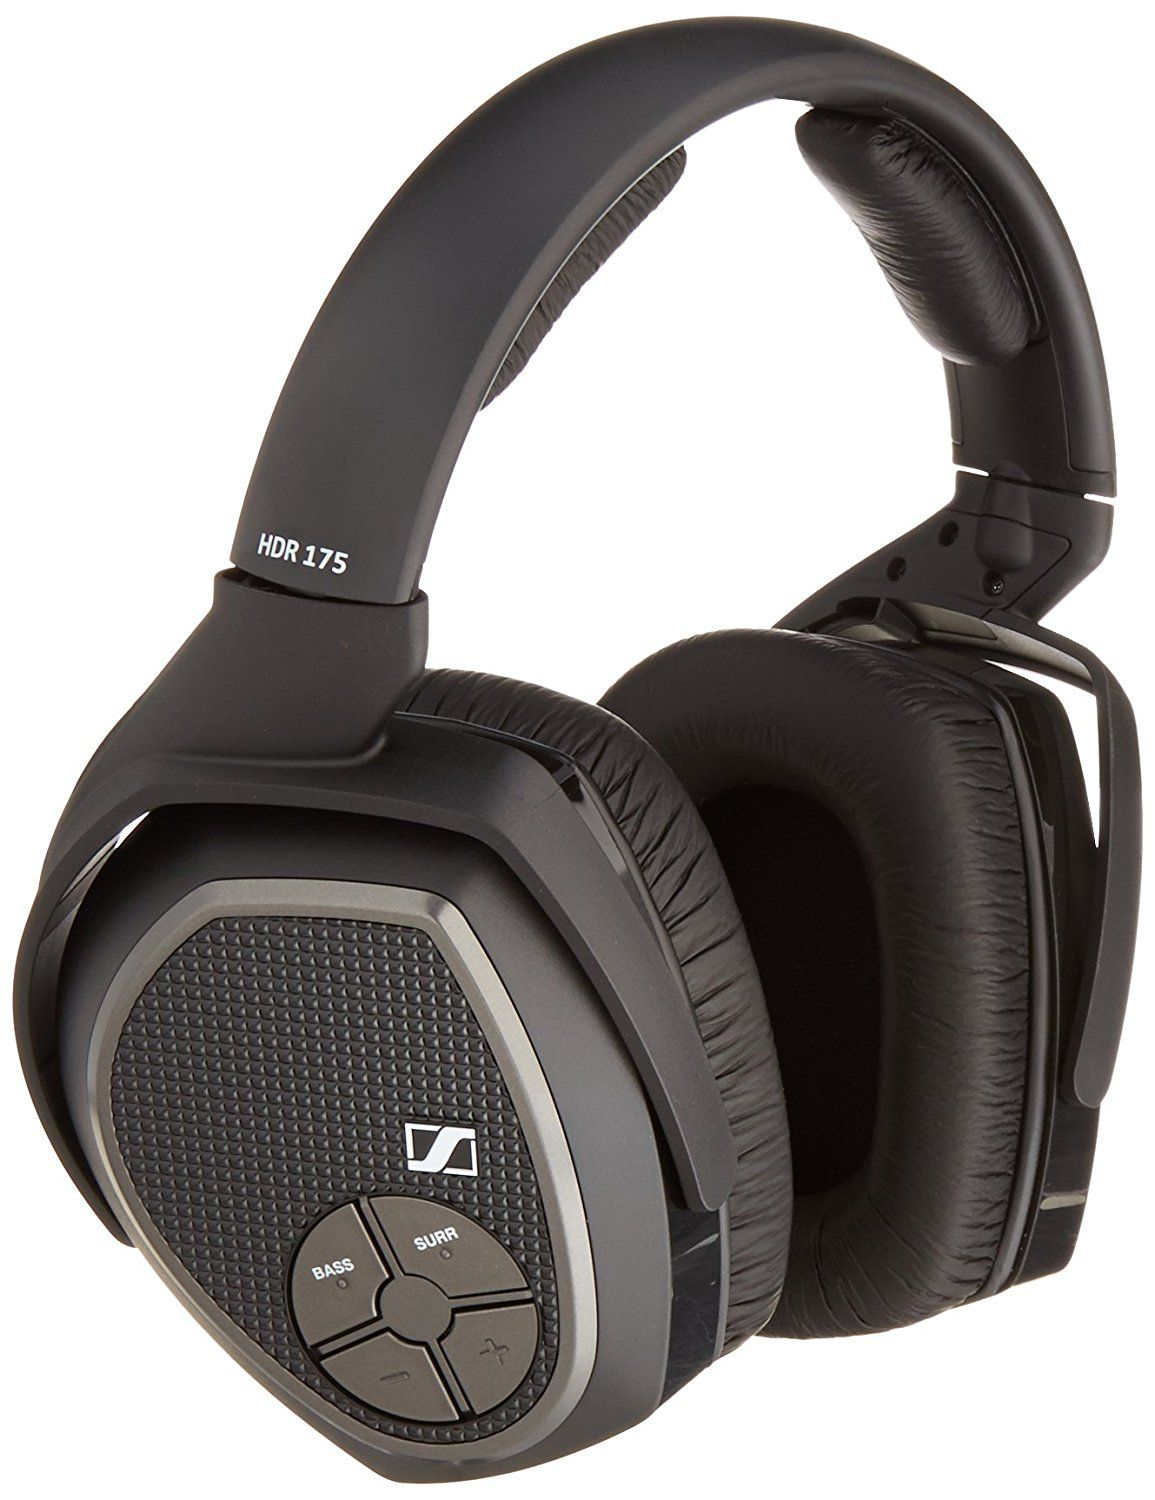 b45ccacc28a The RS 175 offers its users a sound quality with utmost clarity. It  features two listening modes. RS 175 offers sound quality with utmost  clarity.